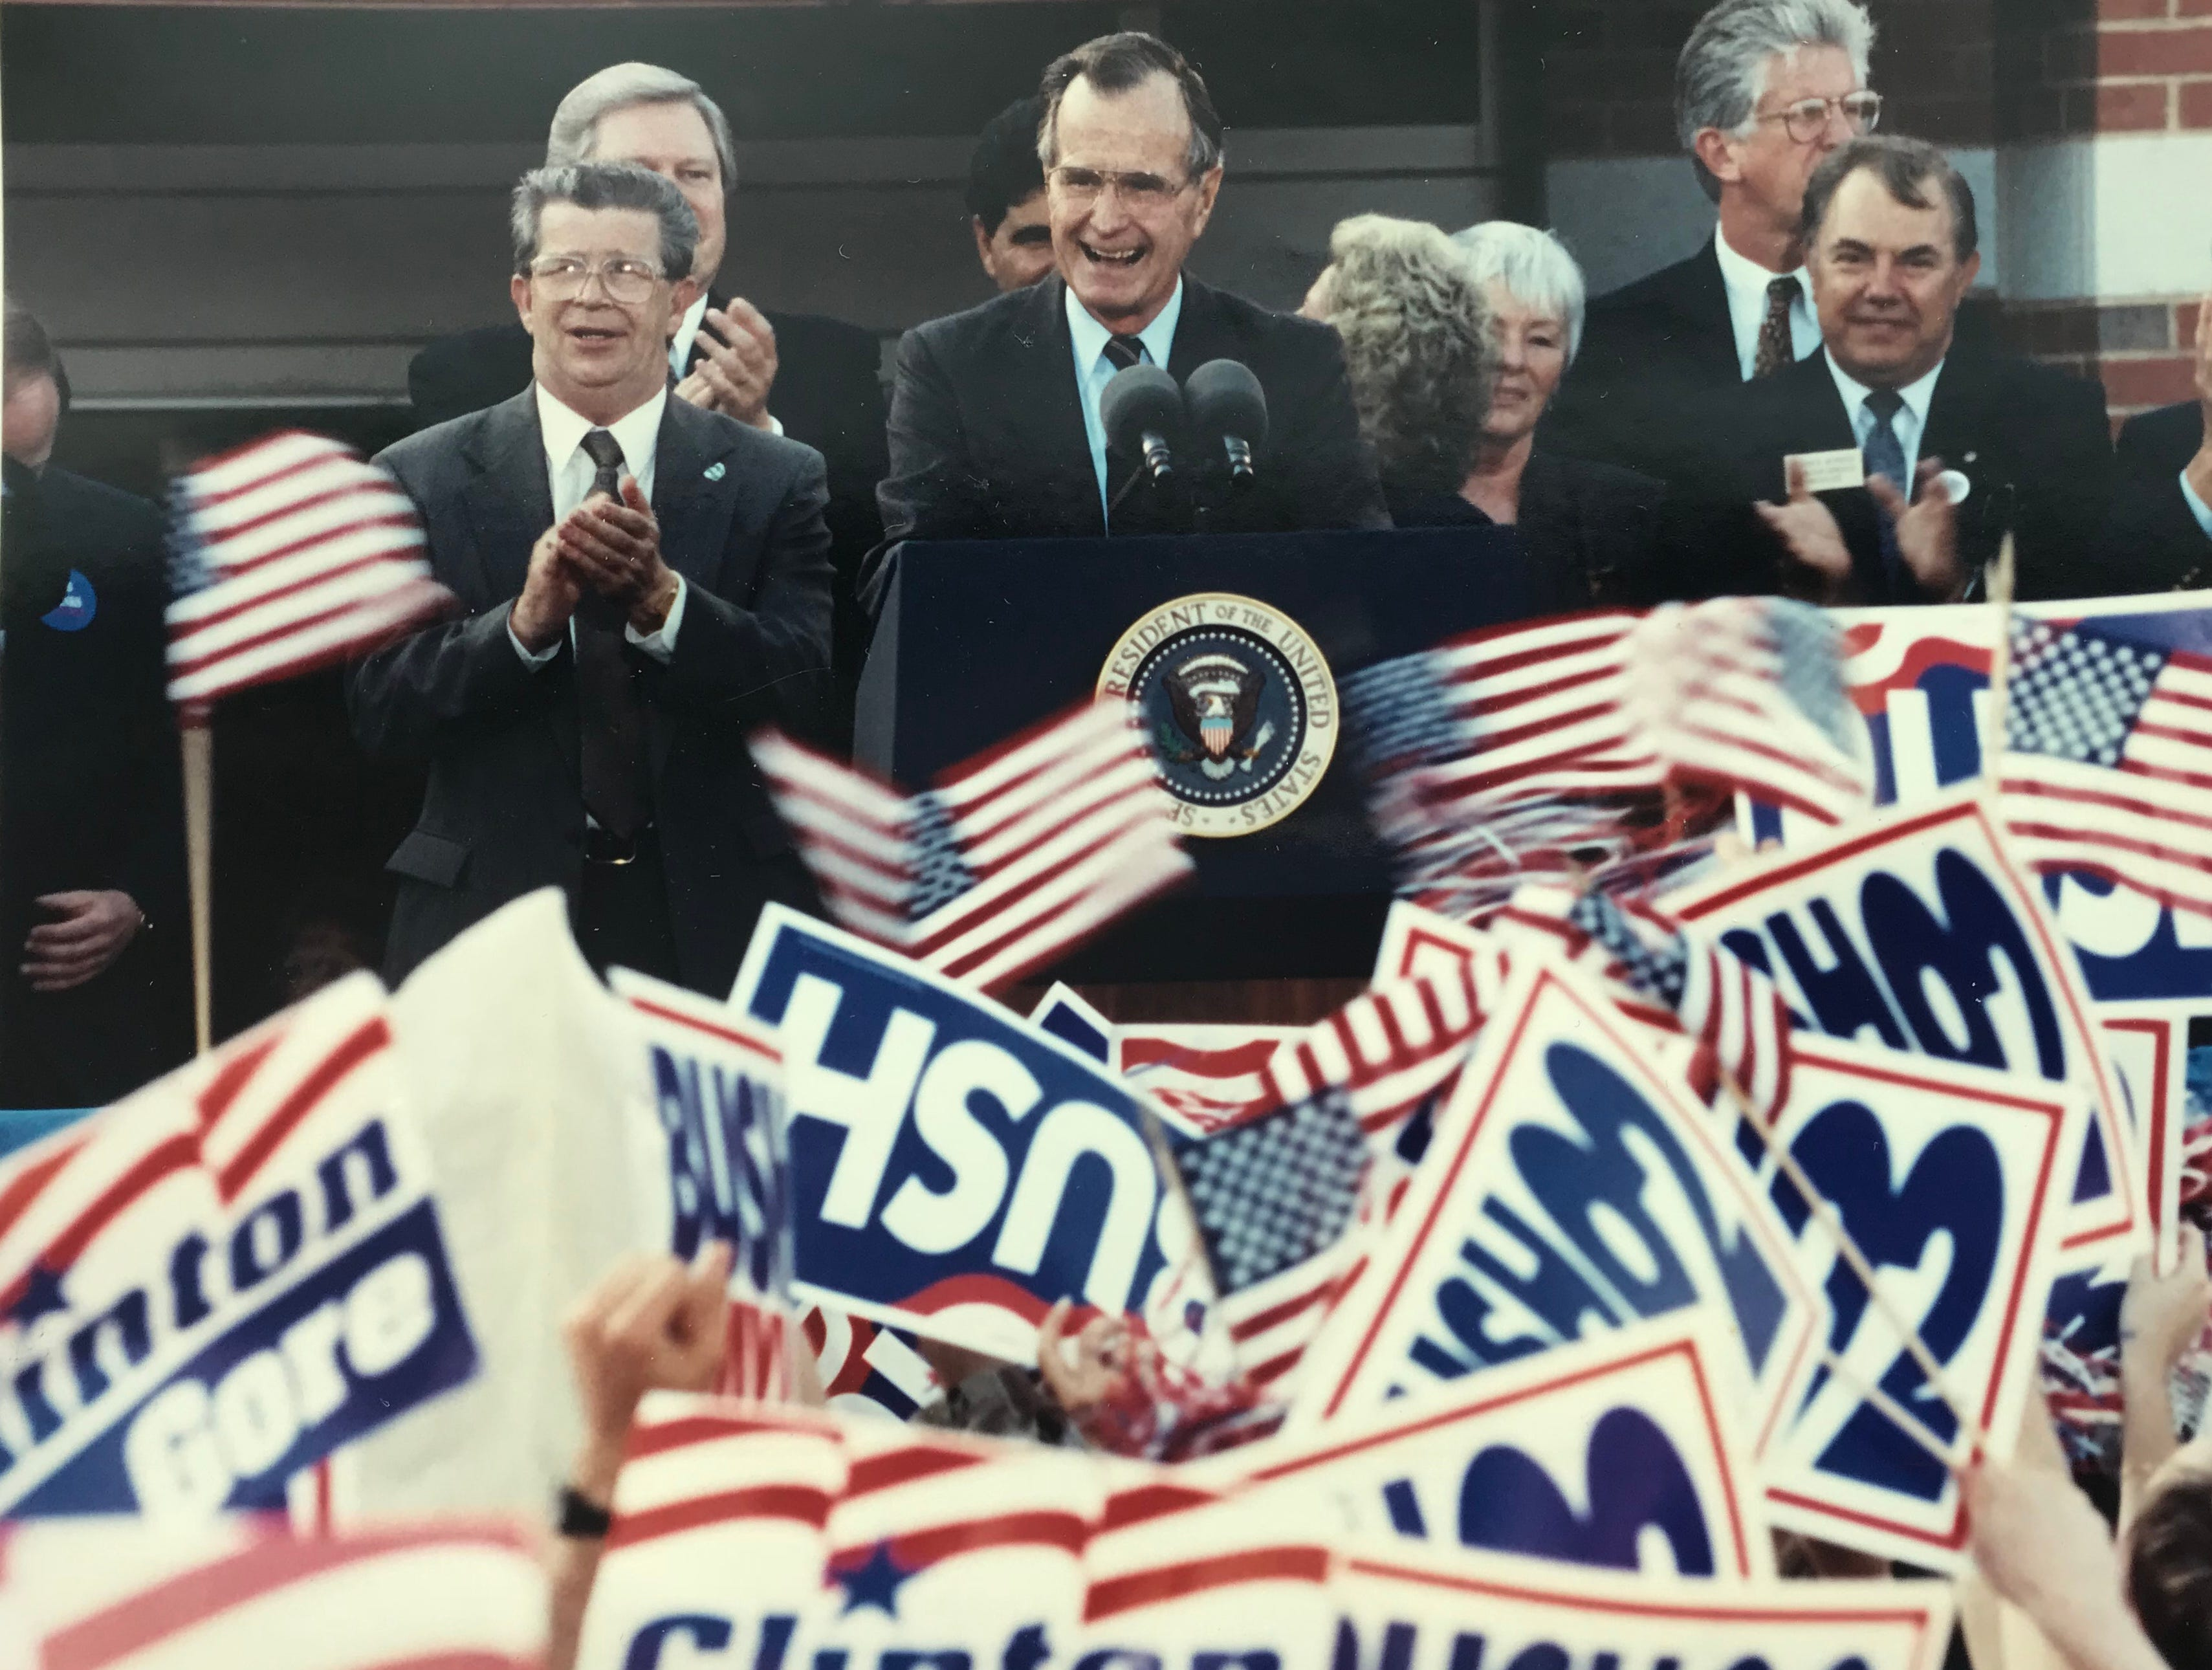 President George H.W. Bush smiles after delivering remarks during a rally at Middlesex County College on Oct. 16, 1992.